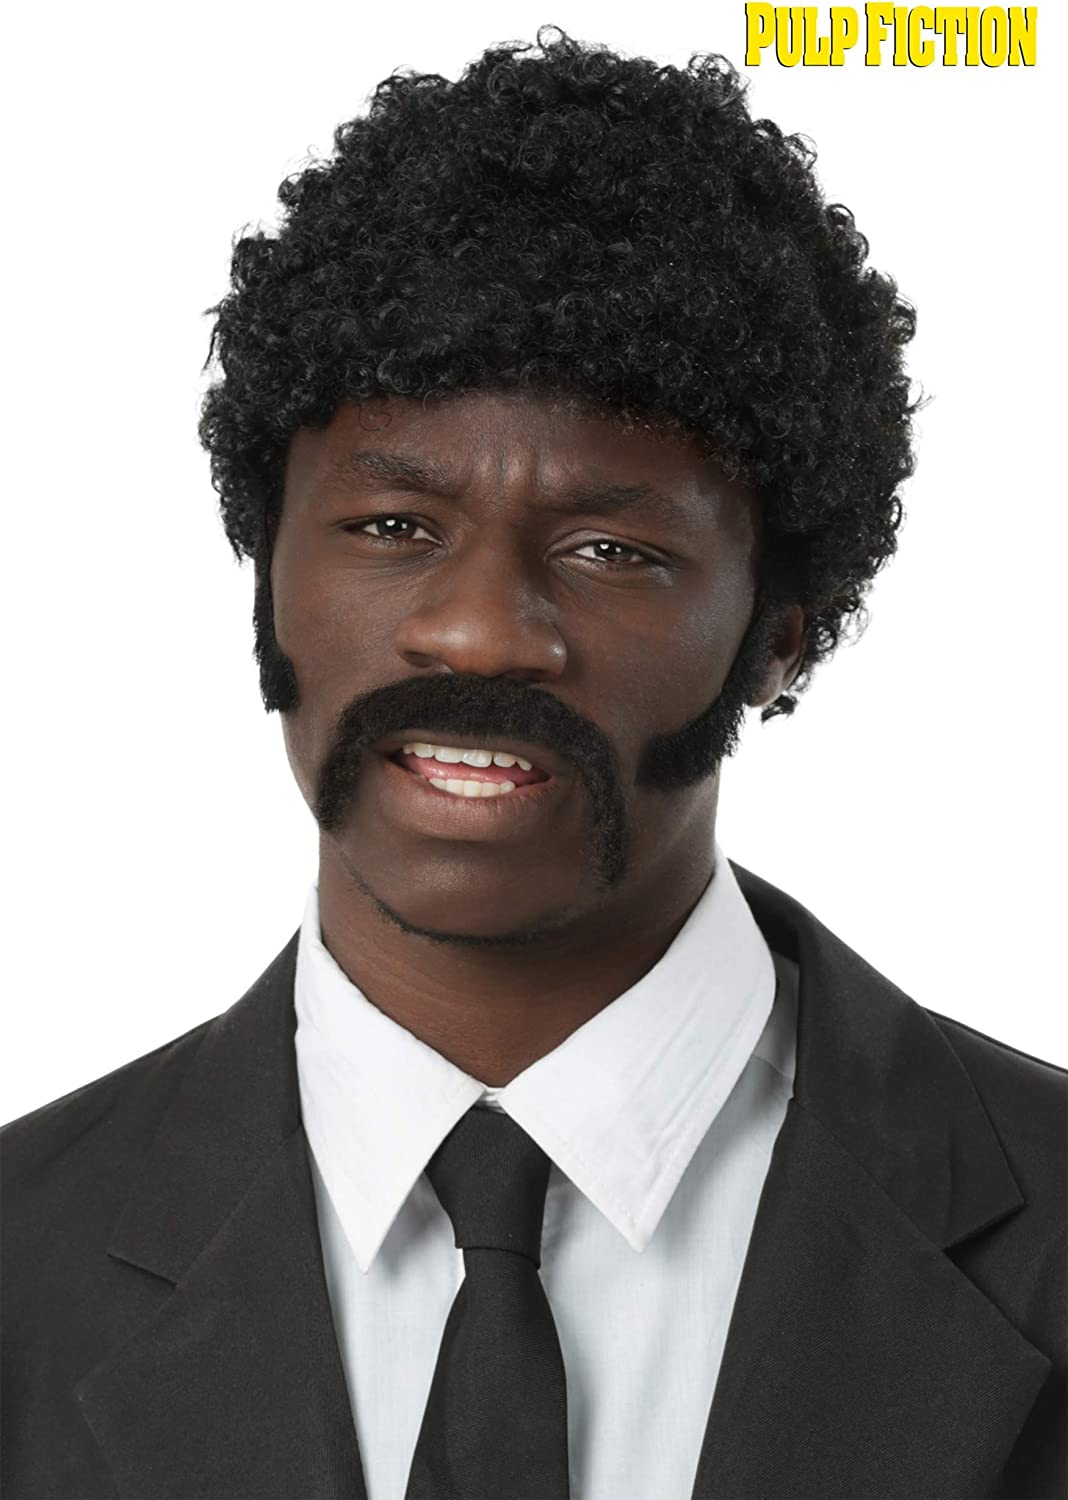 Fun Costumes Pulp Fiction Adult Jules Winnfield Wig and Facial ...